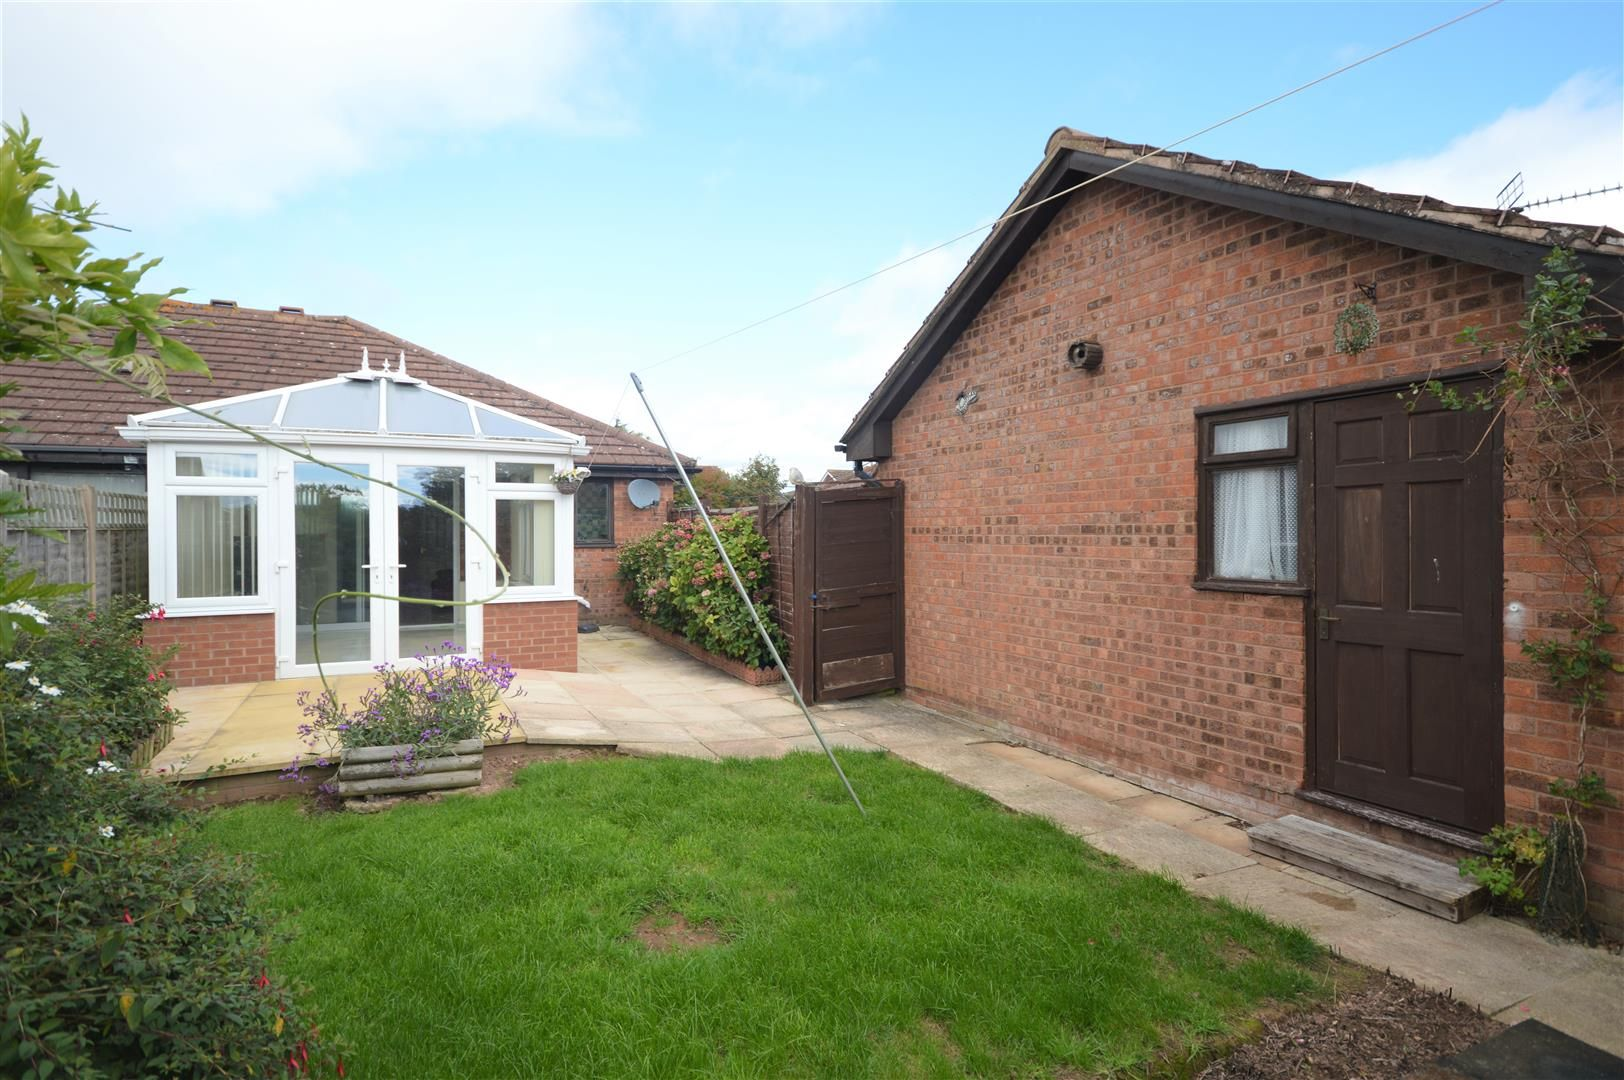 2 bed semi-detached bungalow for sale in Leominster 10